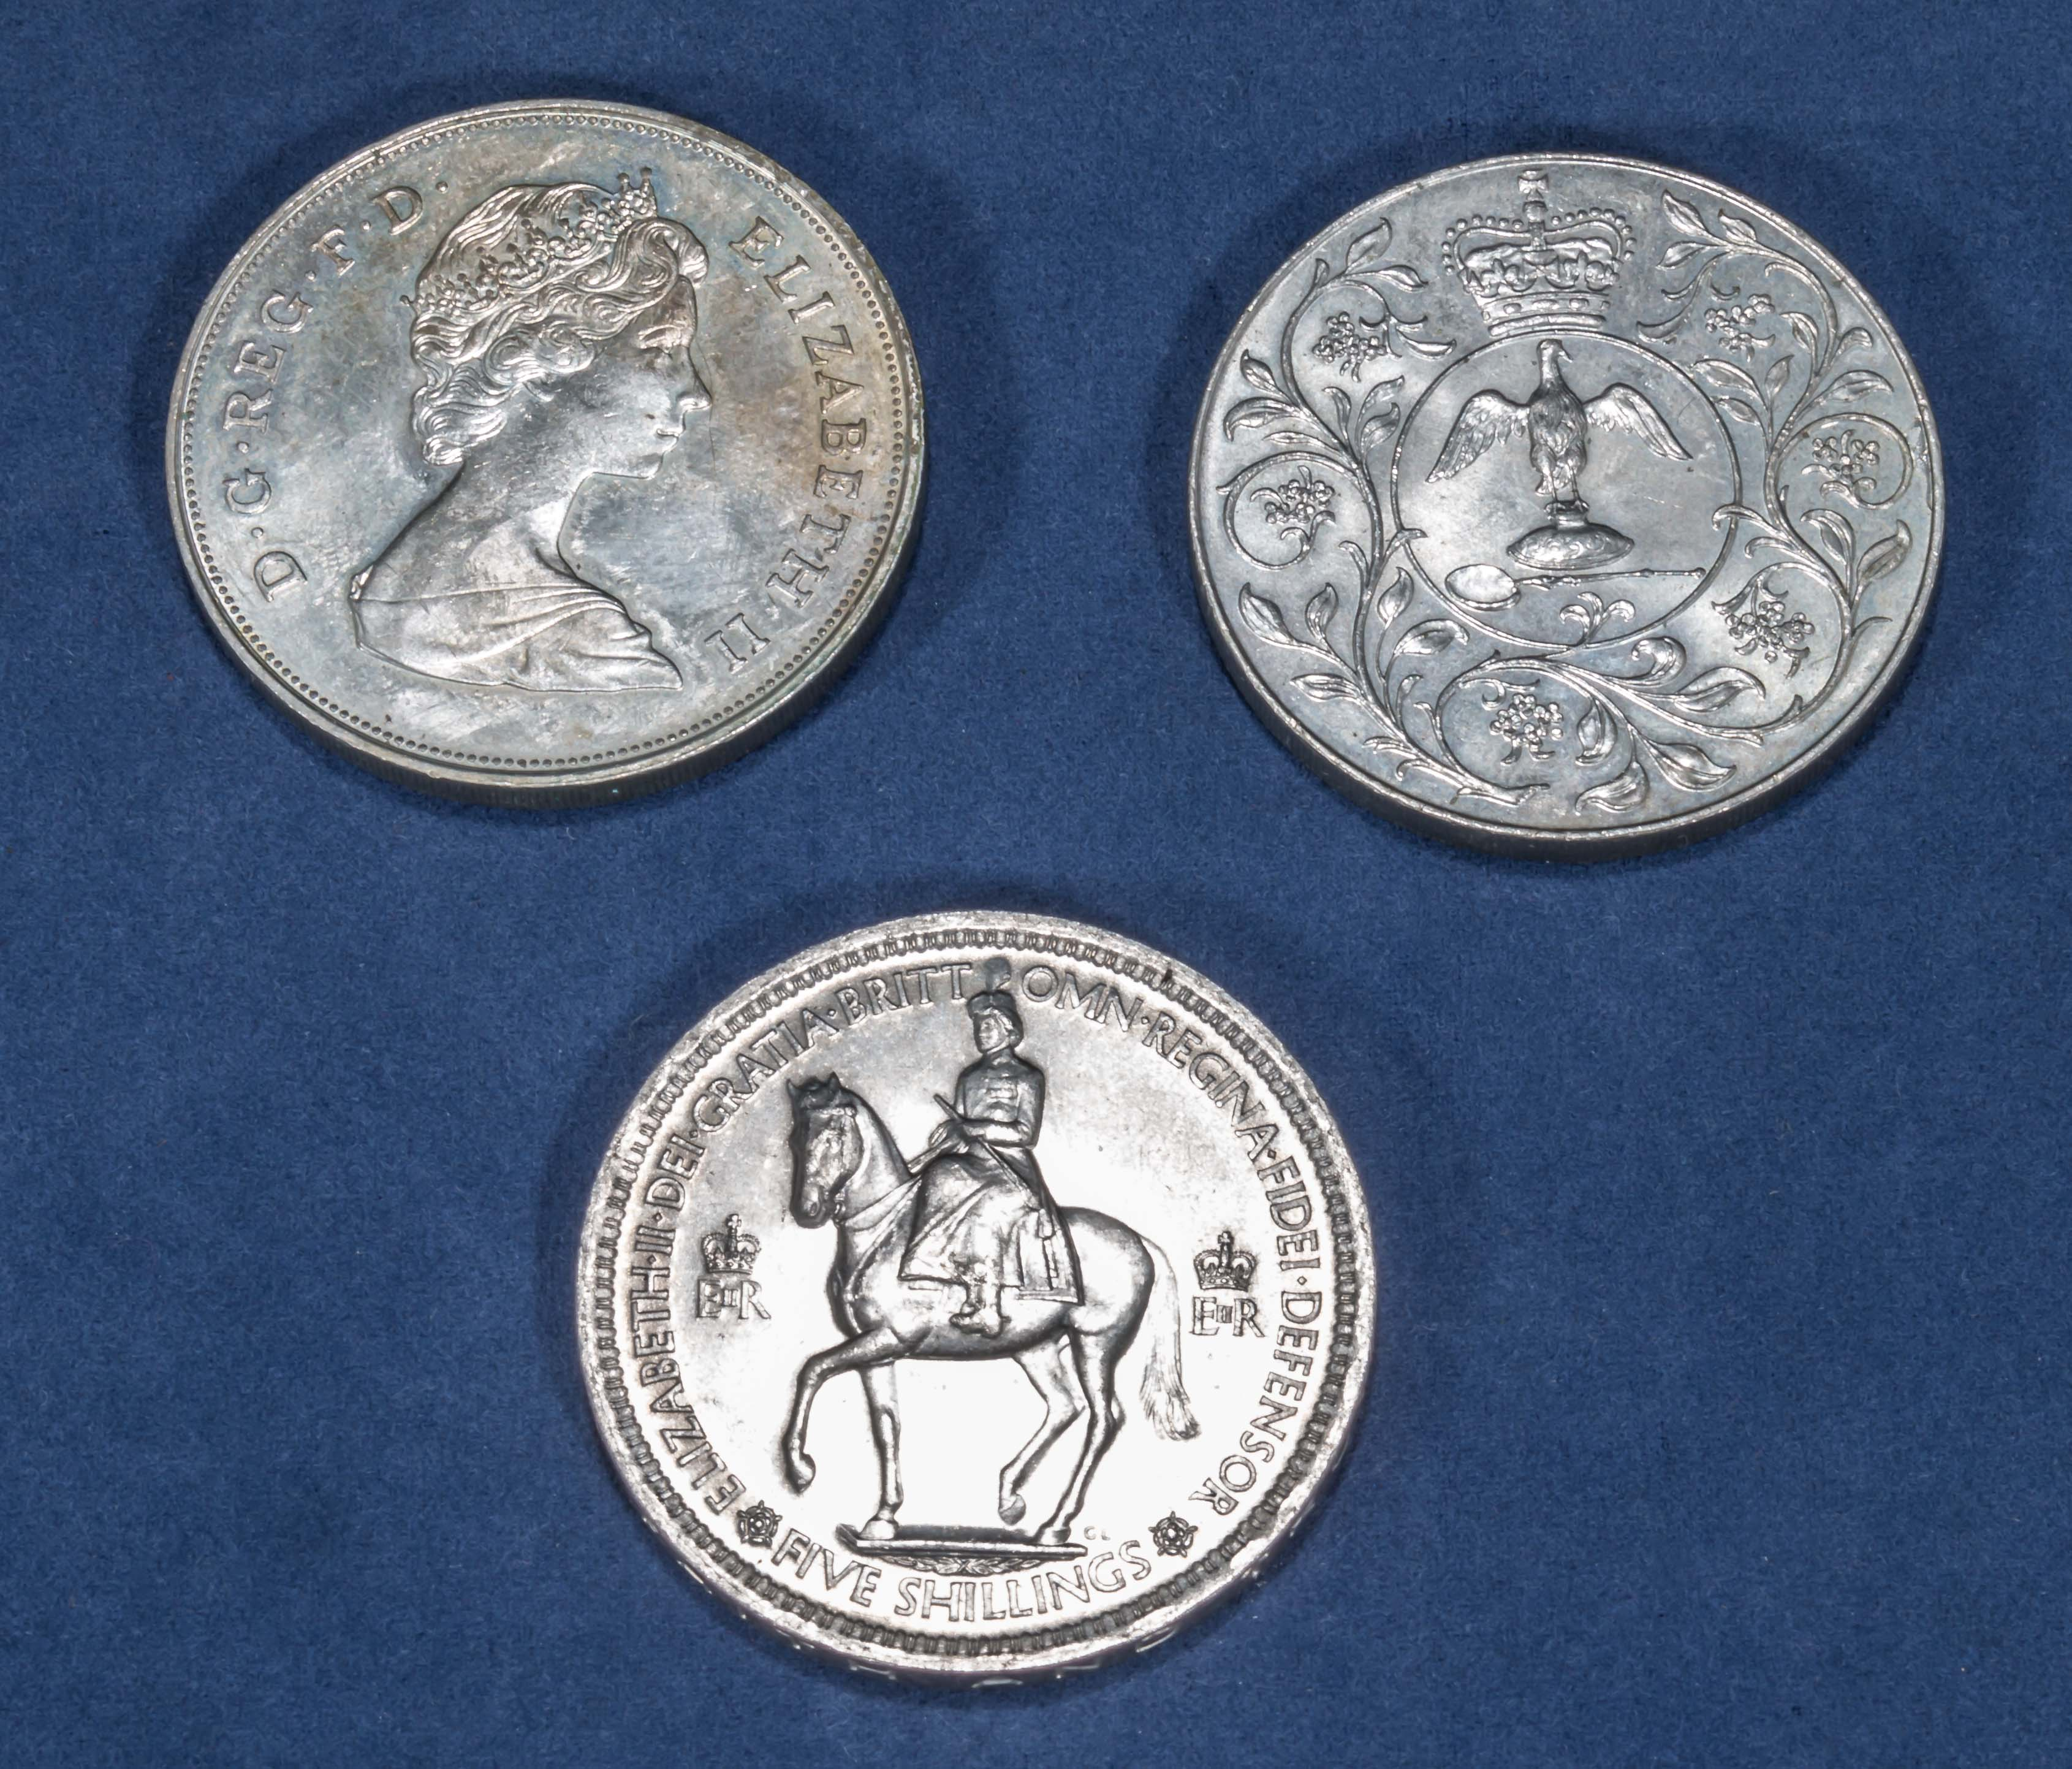 Lot 233 - A 1981 Charles and Diana crown, 1977 silver jubilee crown and a 1965 five shilling piece